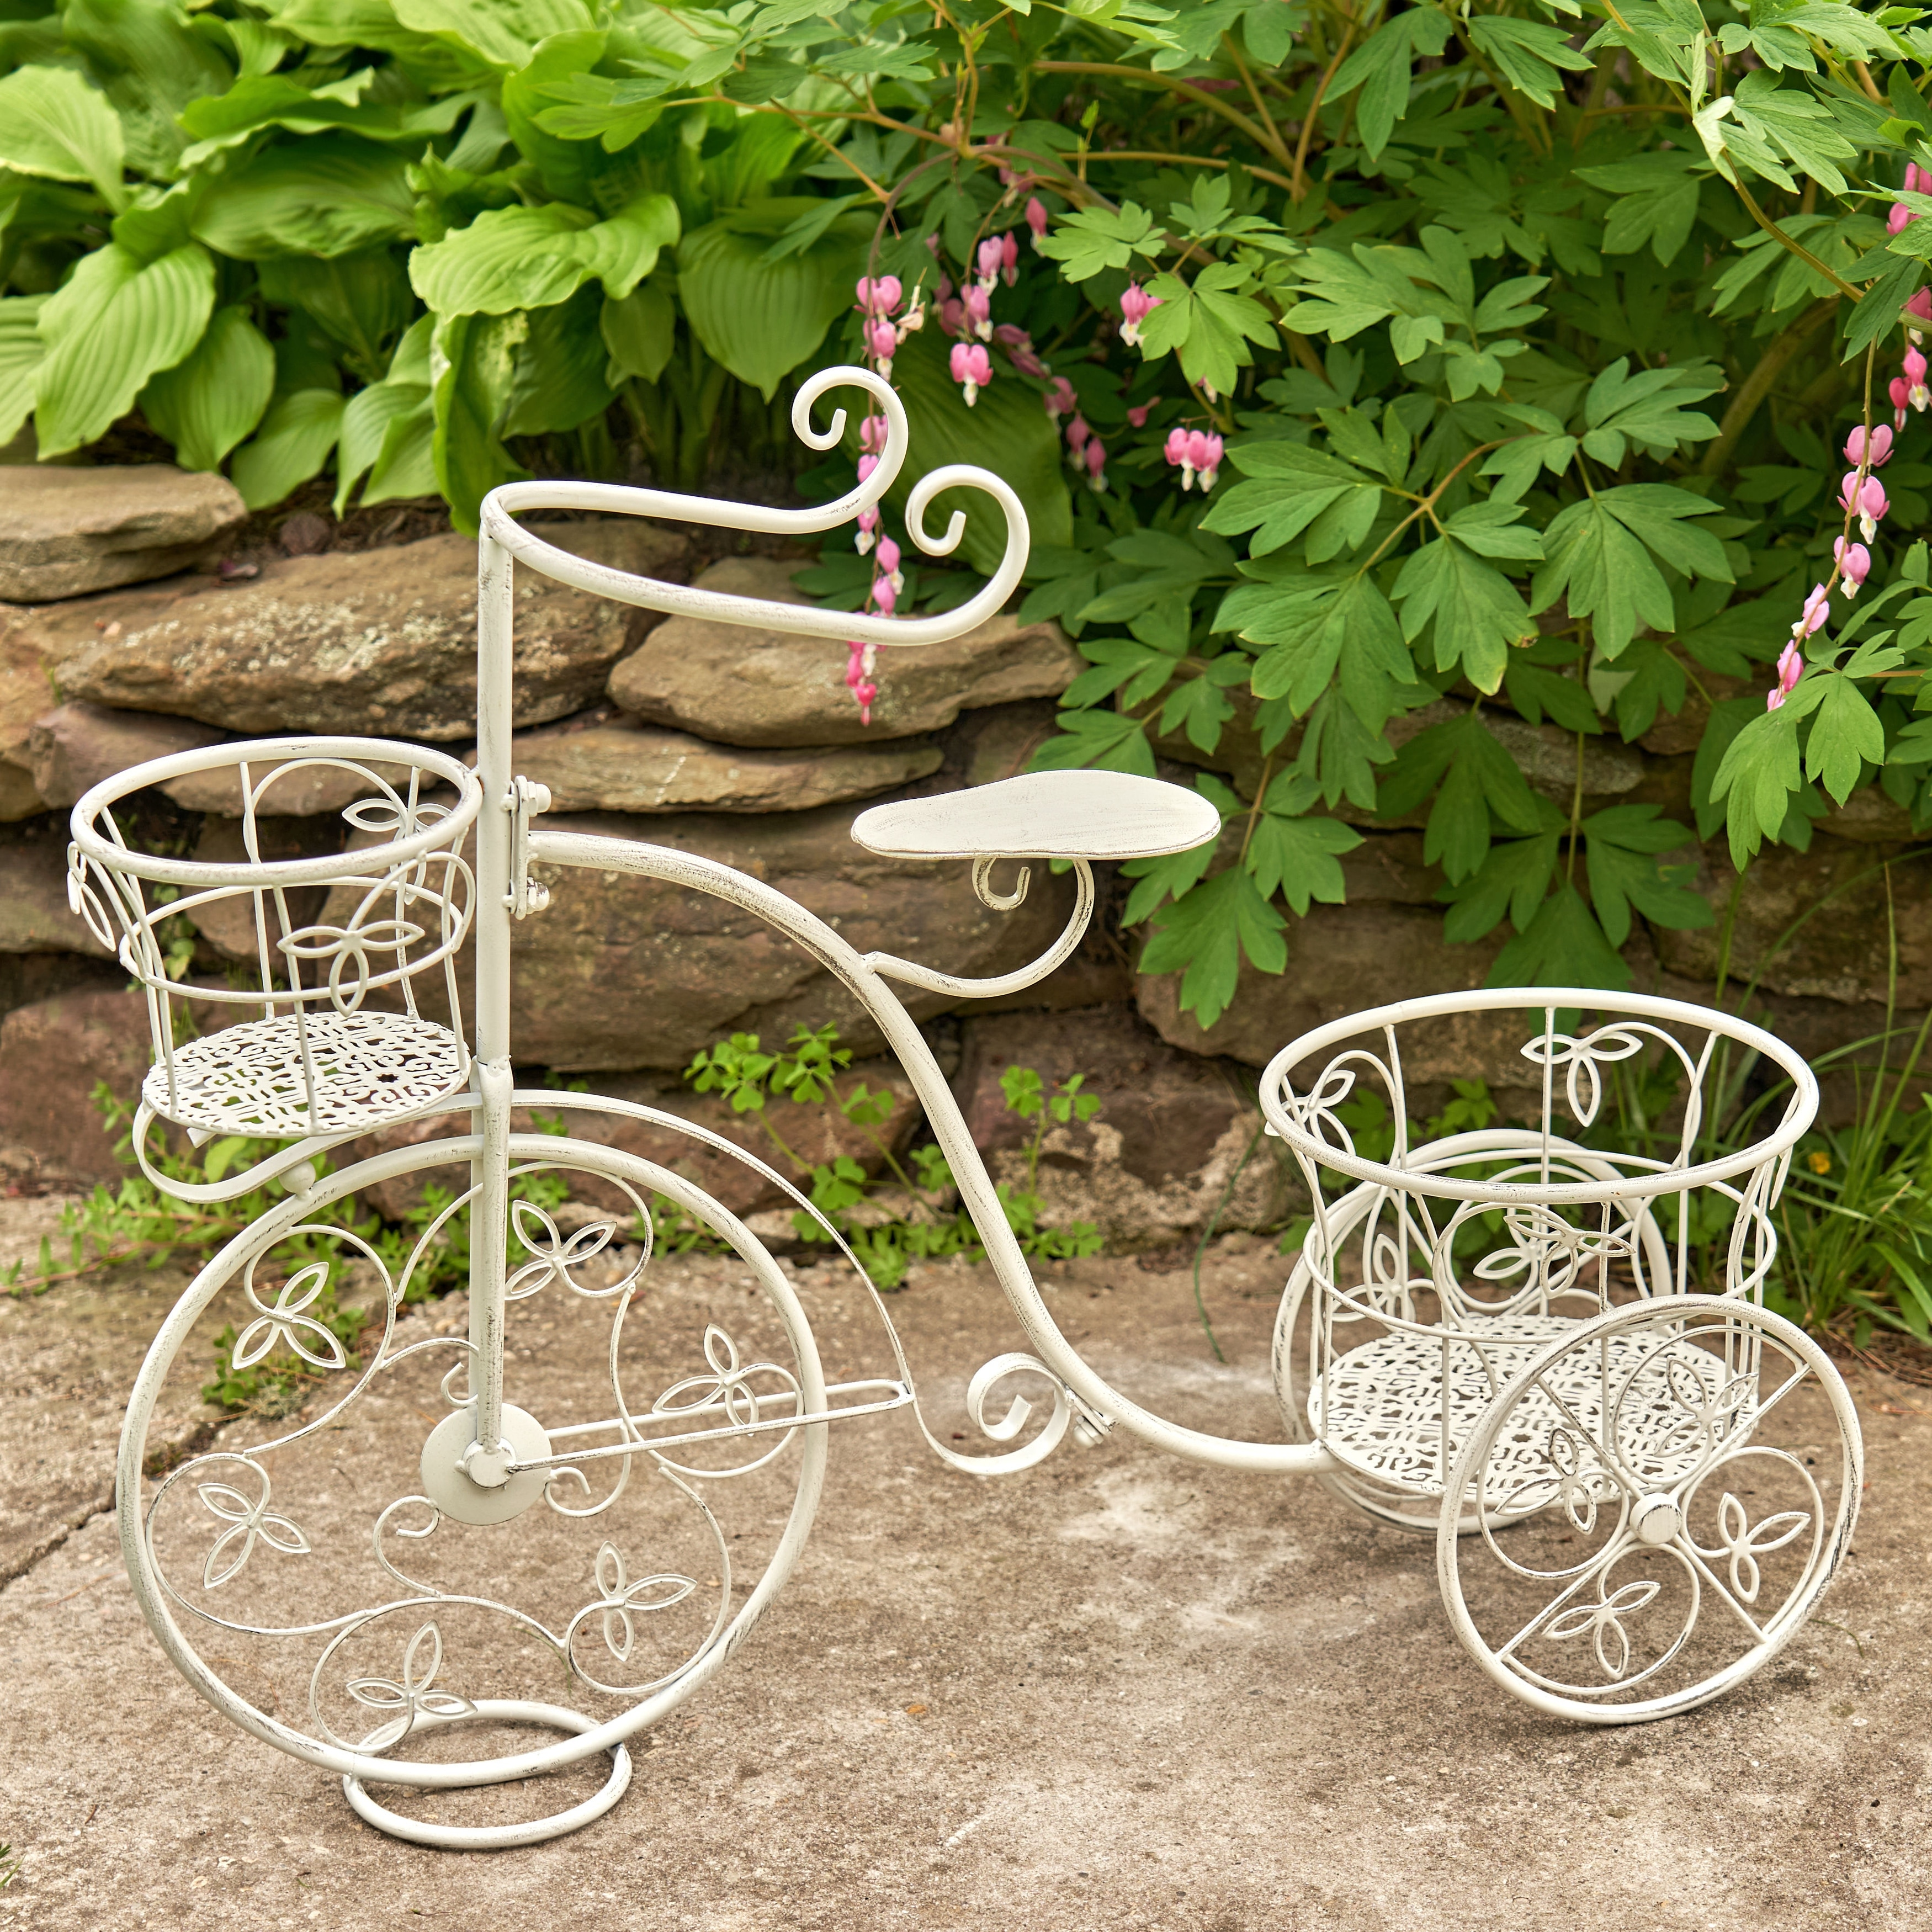 Vintage Style Tricycle Planter With Two Flower Baskets Overstock 31619052